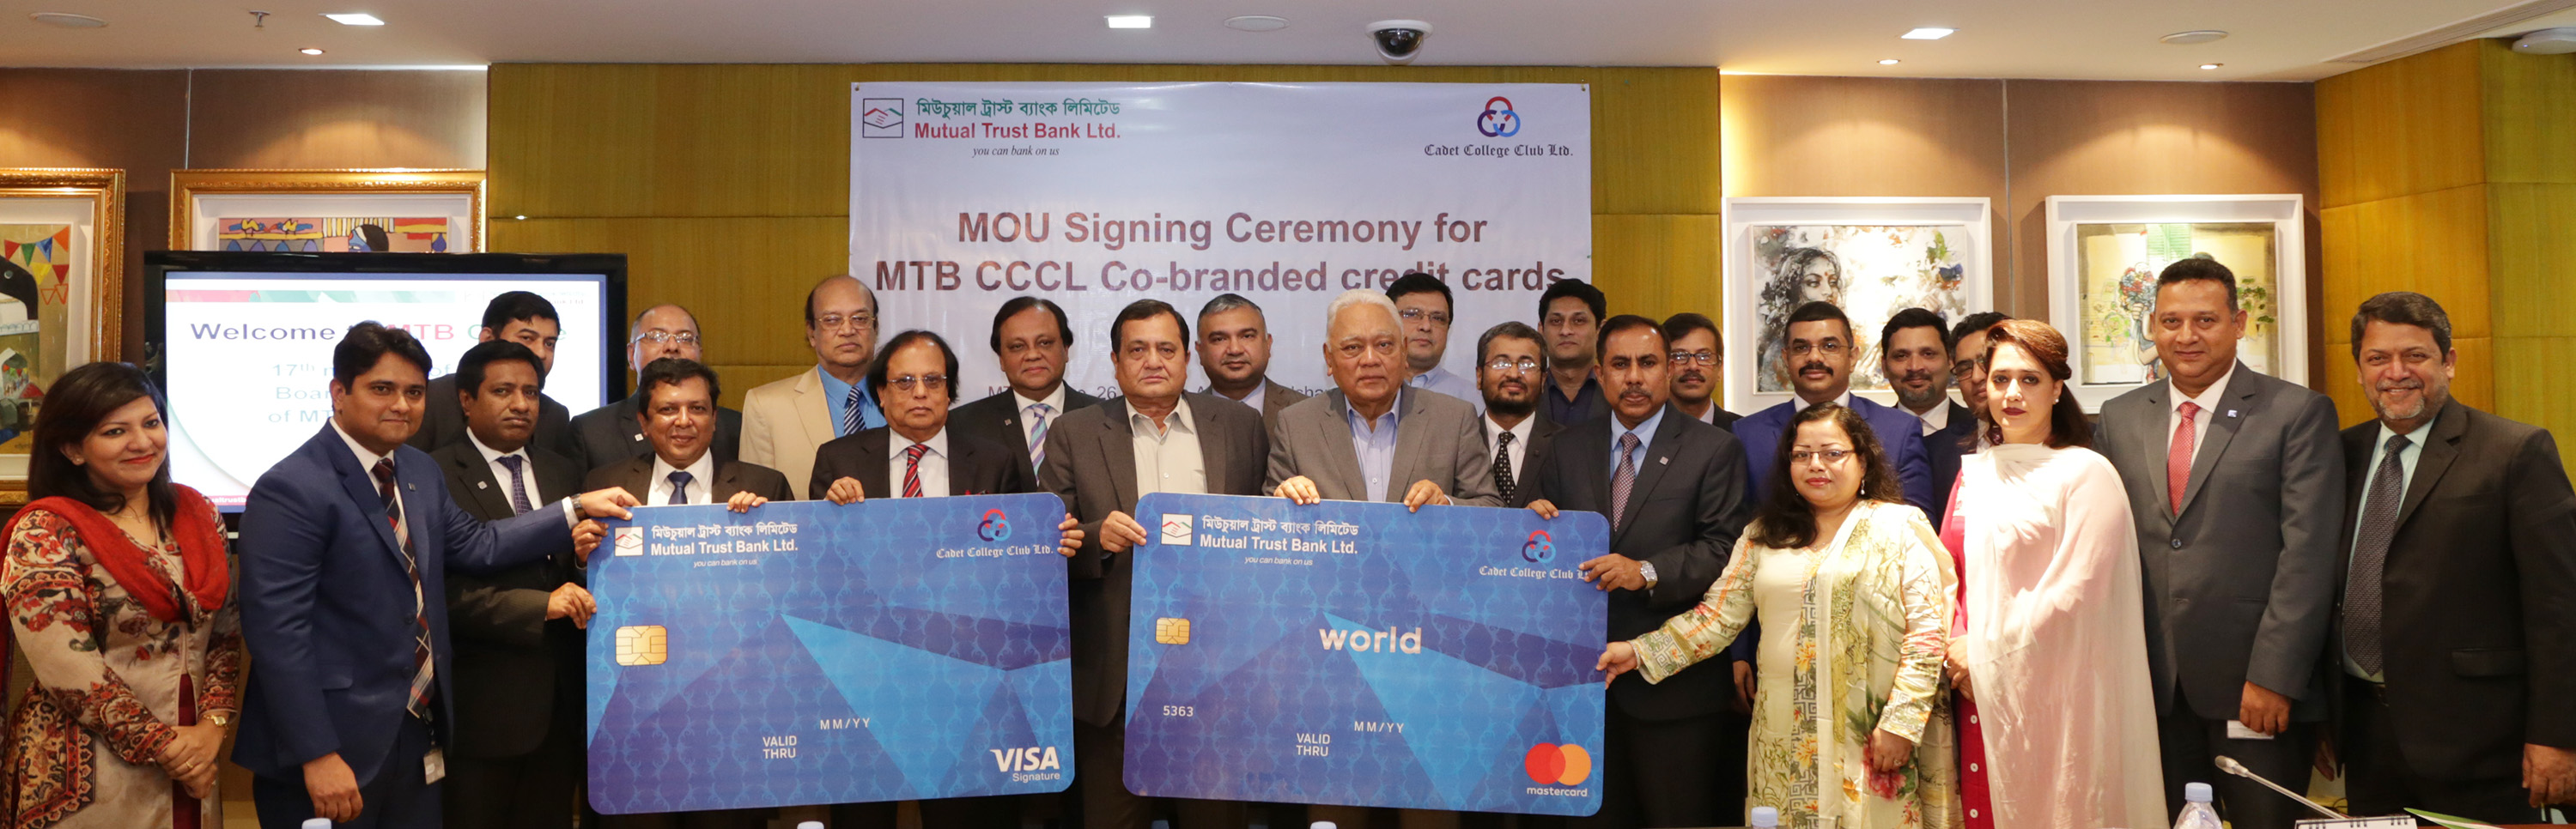 MTB launches Co-branded Credit Card For Cadet College Club Limited